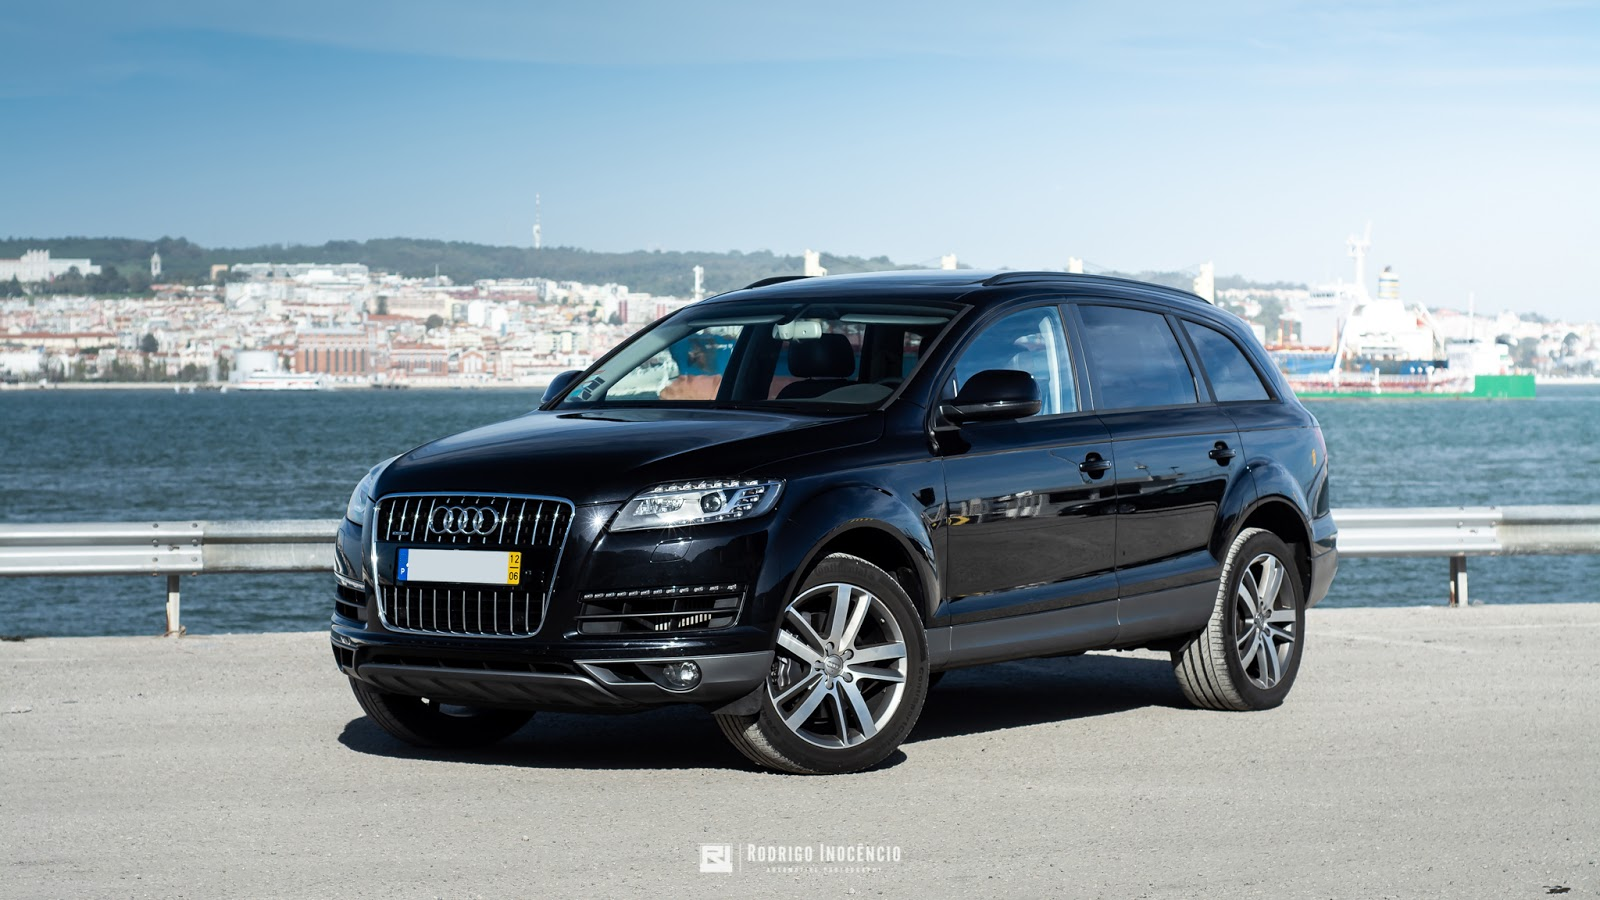 Audi Q7 3.0TDI (4L facelift) - Morgan Cars Portugal